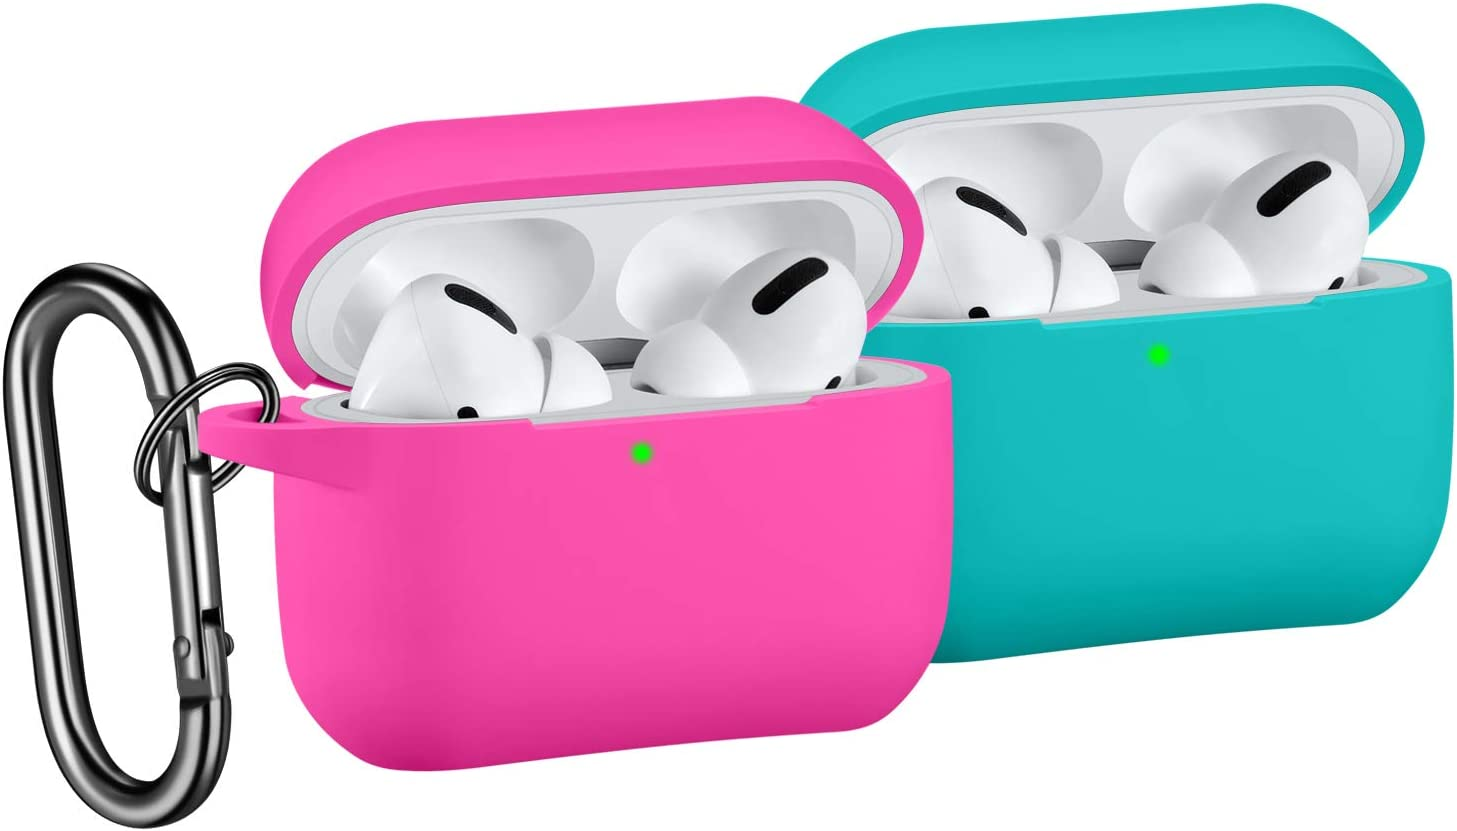 [2 Pack] SNBLK Designed for Airpods Pro Case Cover Silicone Protective Charging Case Skin with Keychain Compatible for Apple Airpods Pro 2019, (Front LED Visible) Rose Pink/Teal